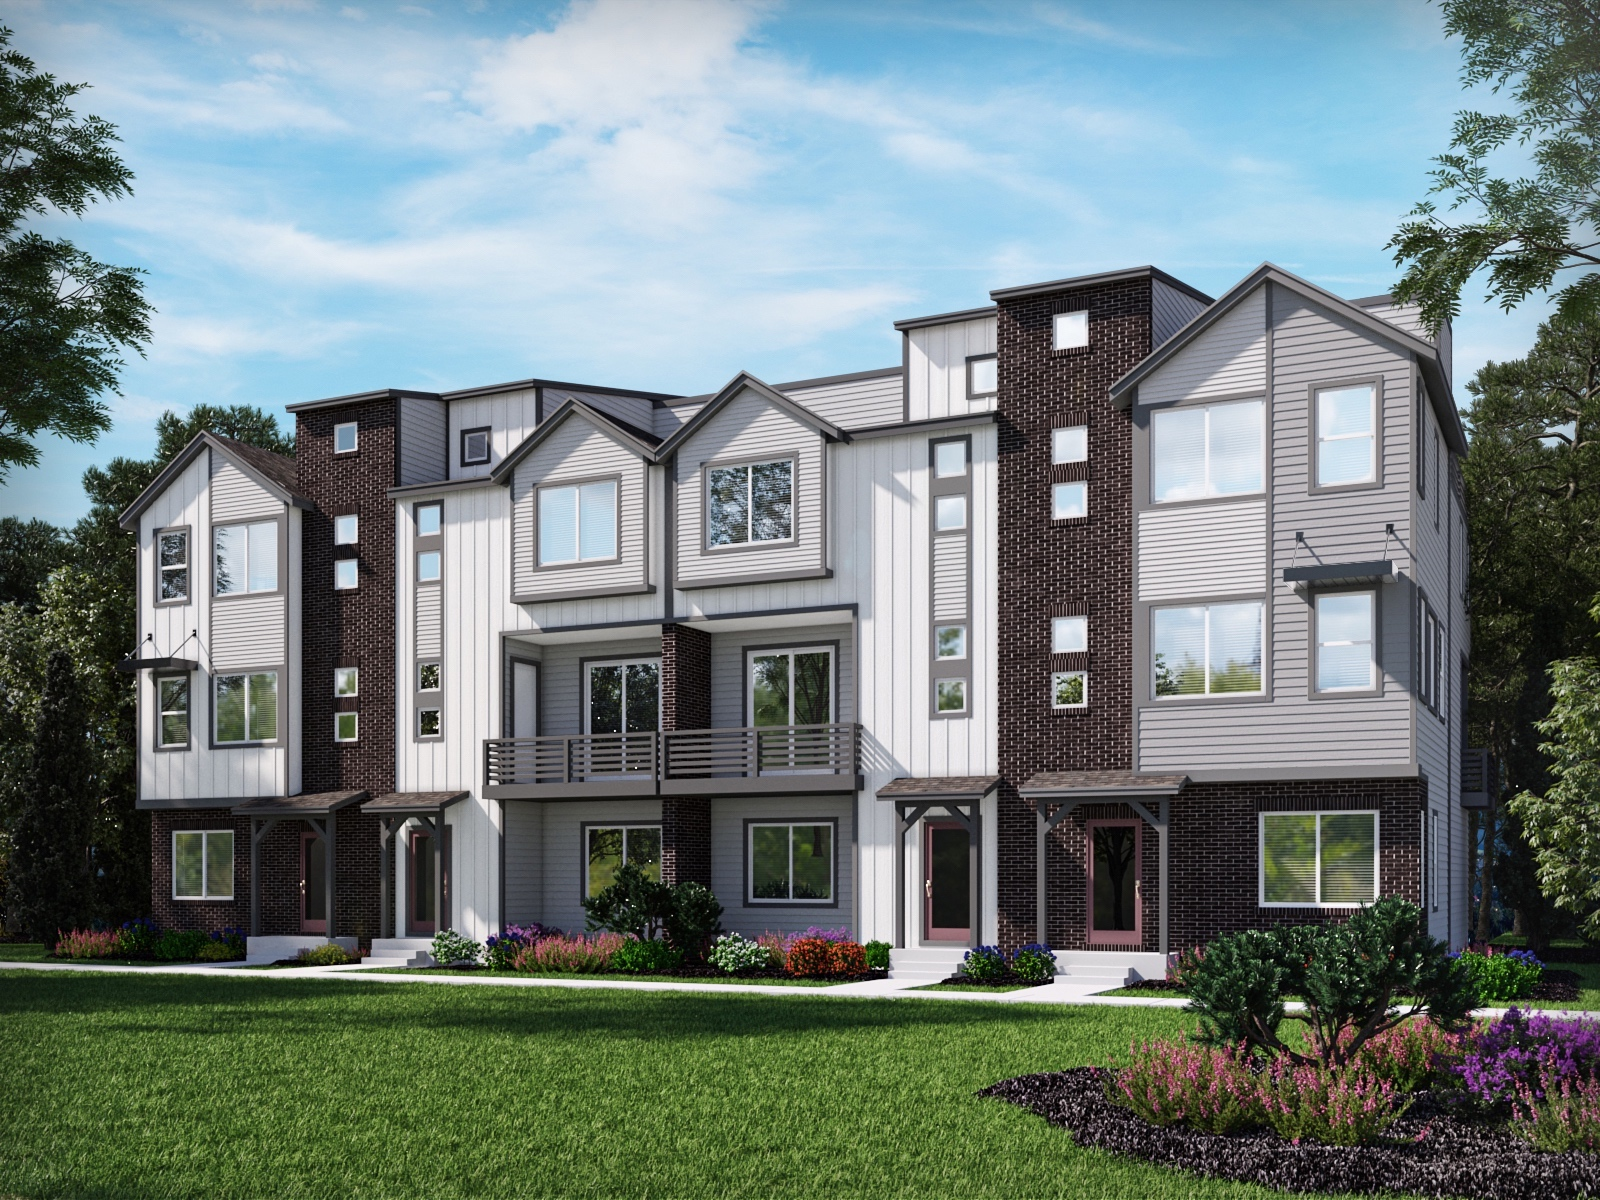 Meritage Homes Cameron Plan at Baseline With Rooftop Deck